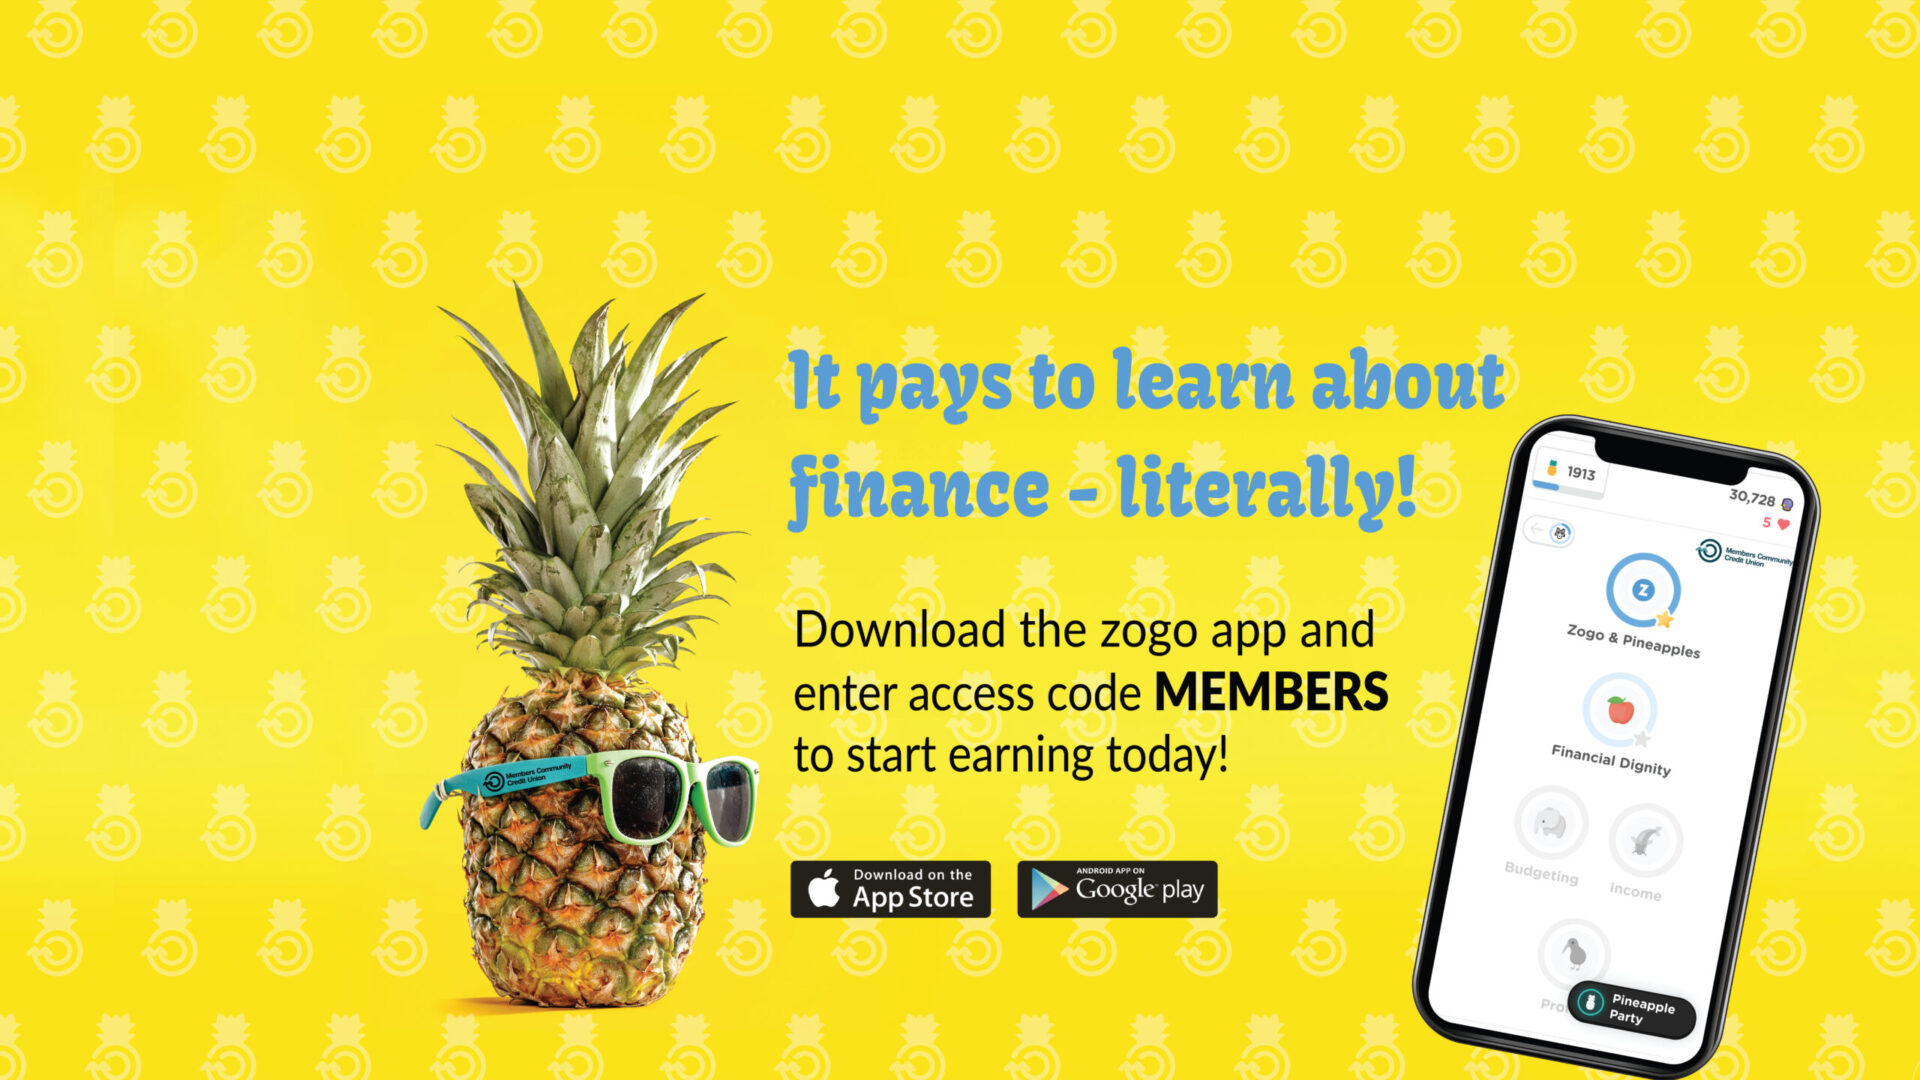 Download the zogo app and use access code MEMBERS to get starting learning and earning today.